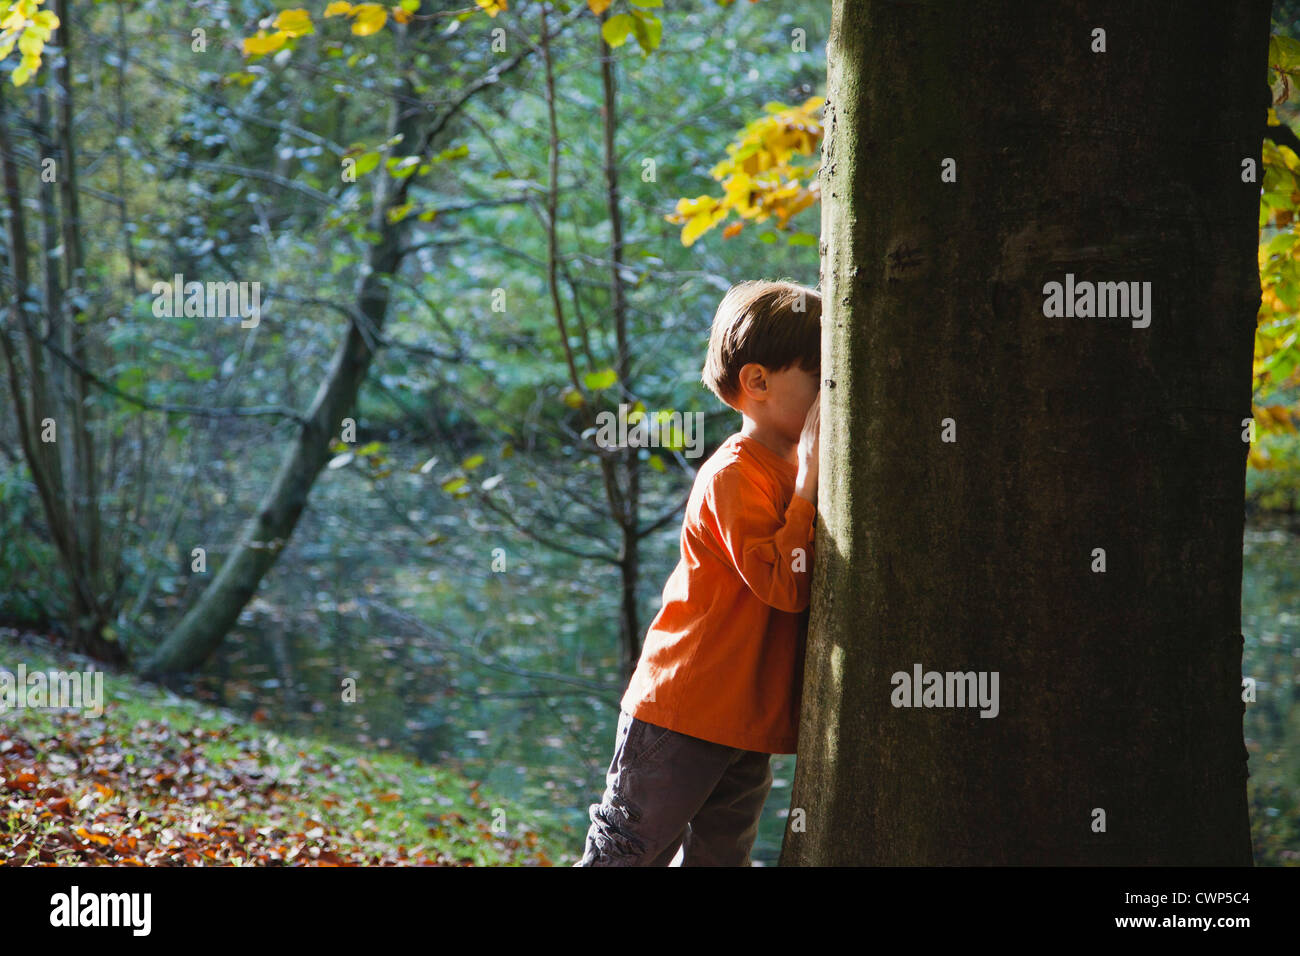 Boy playing hide-and-seek in woods - Stock Image